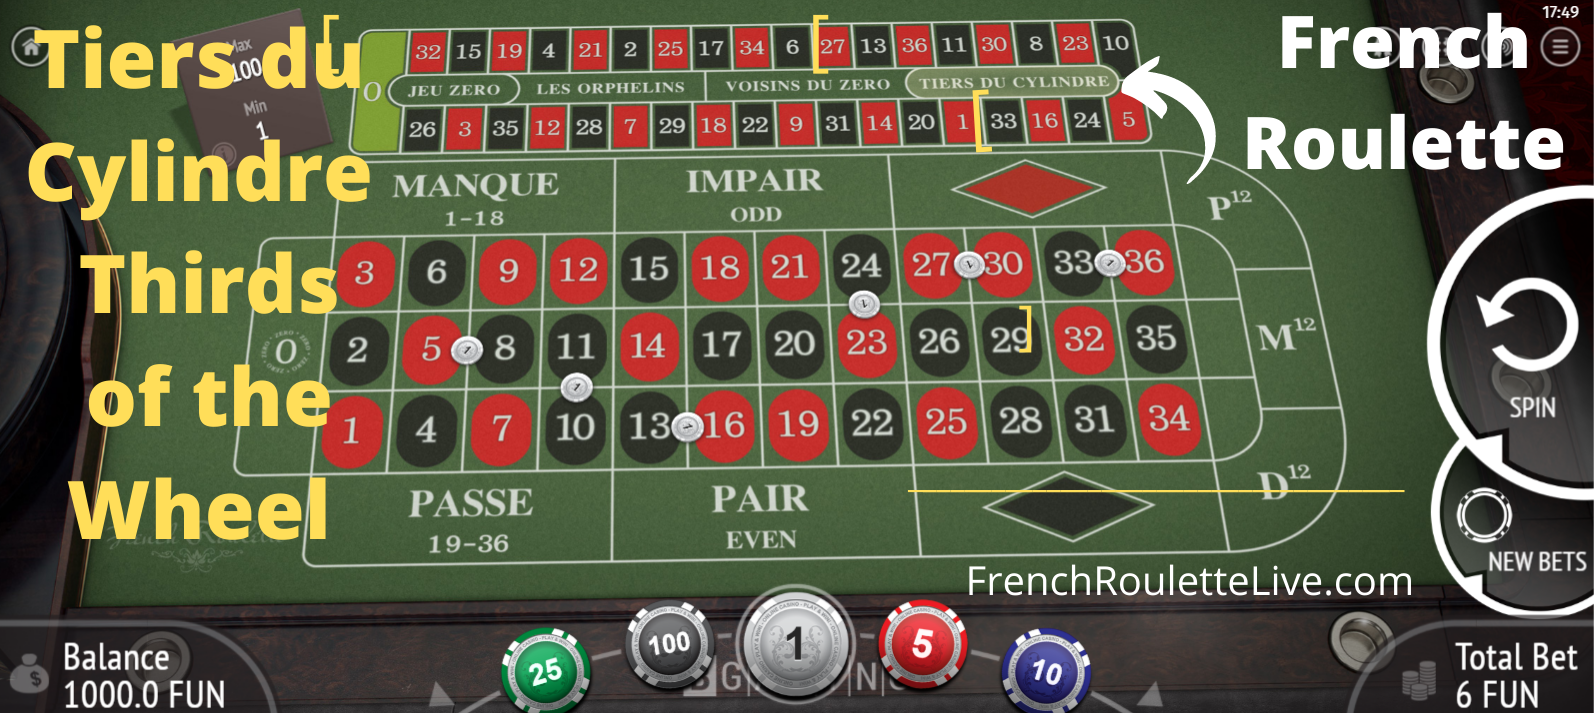 French Roulette Tiers du Cylindre - Thirds of the Wheel Special Bet